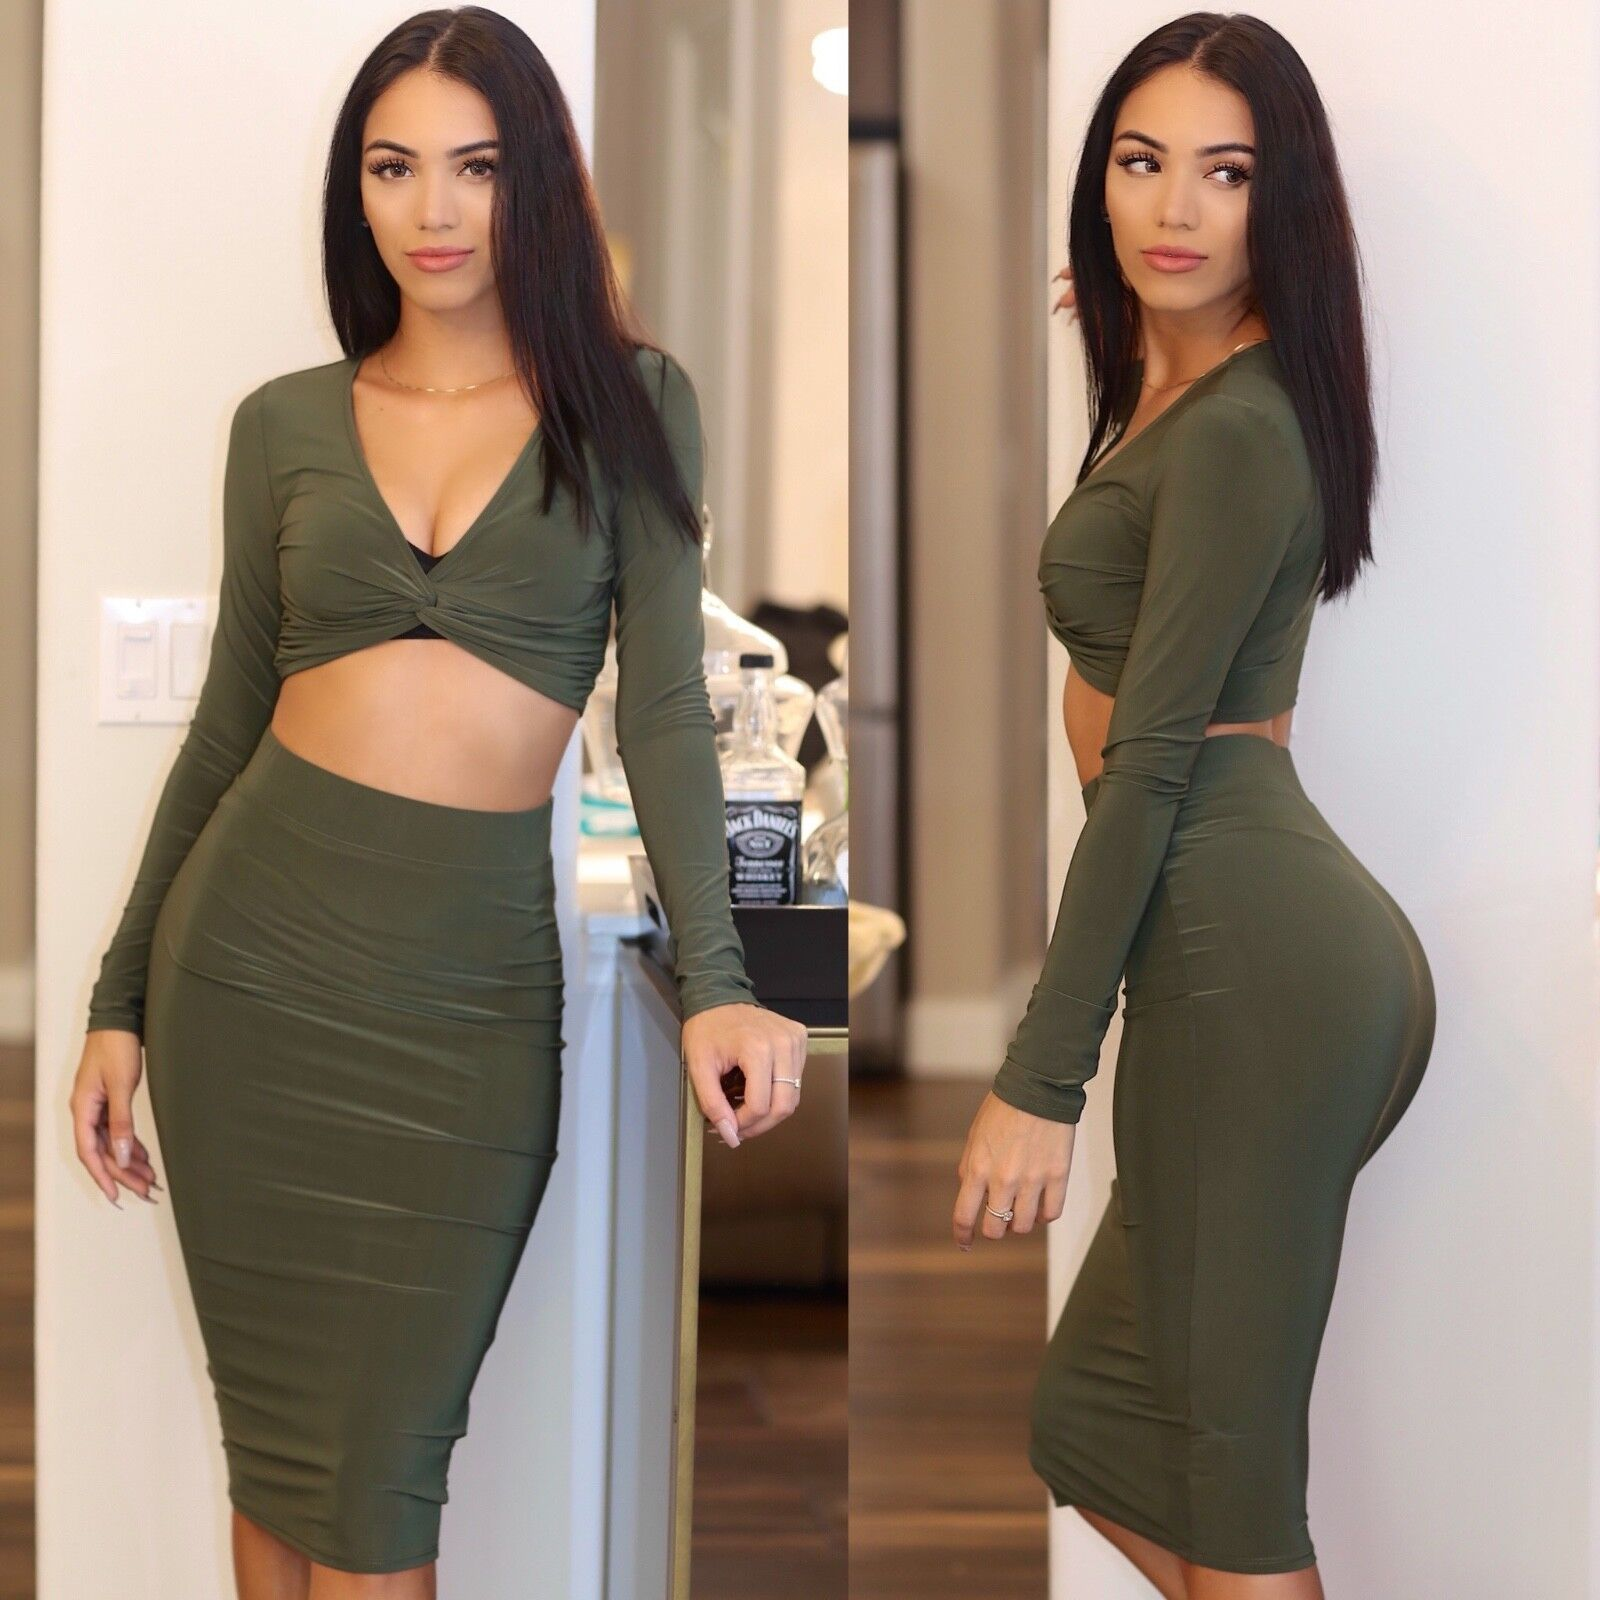 Sexy Women's Crop Top Pencil Skirt Two Piece Skirt (Olive) Night Club Party